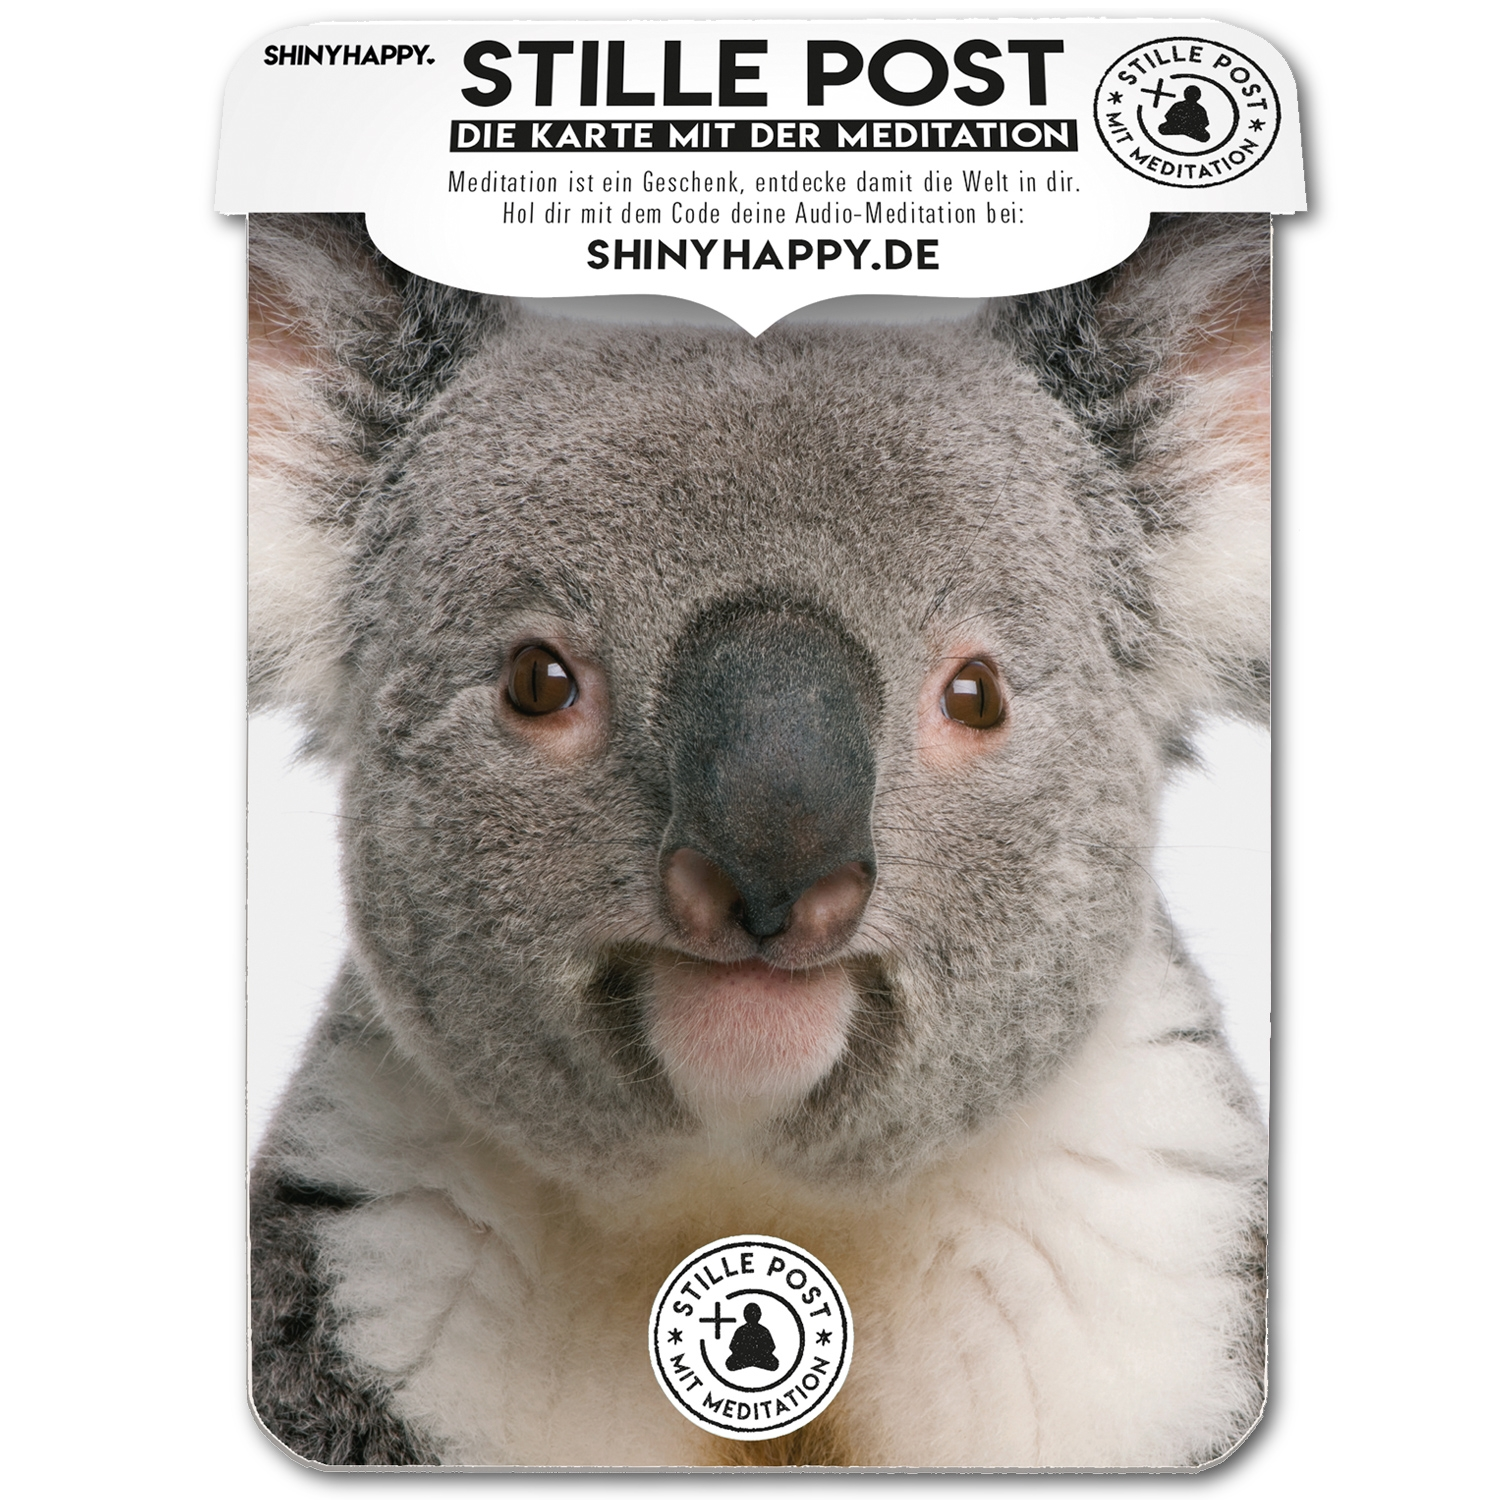 stille_post_shine_koala_A